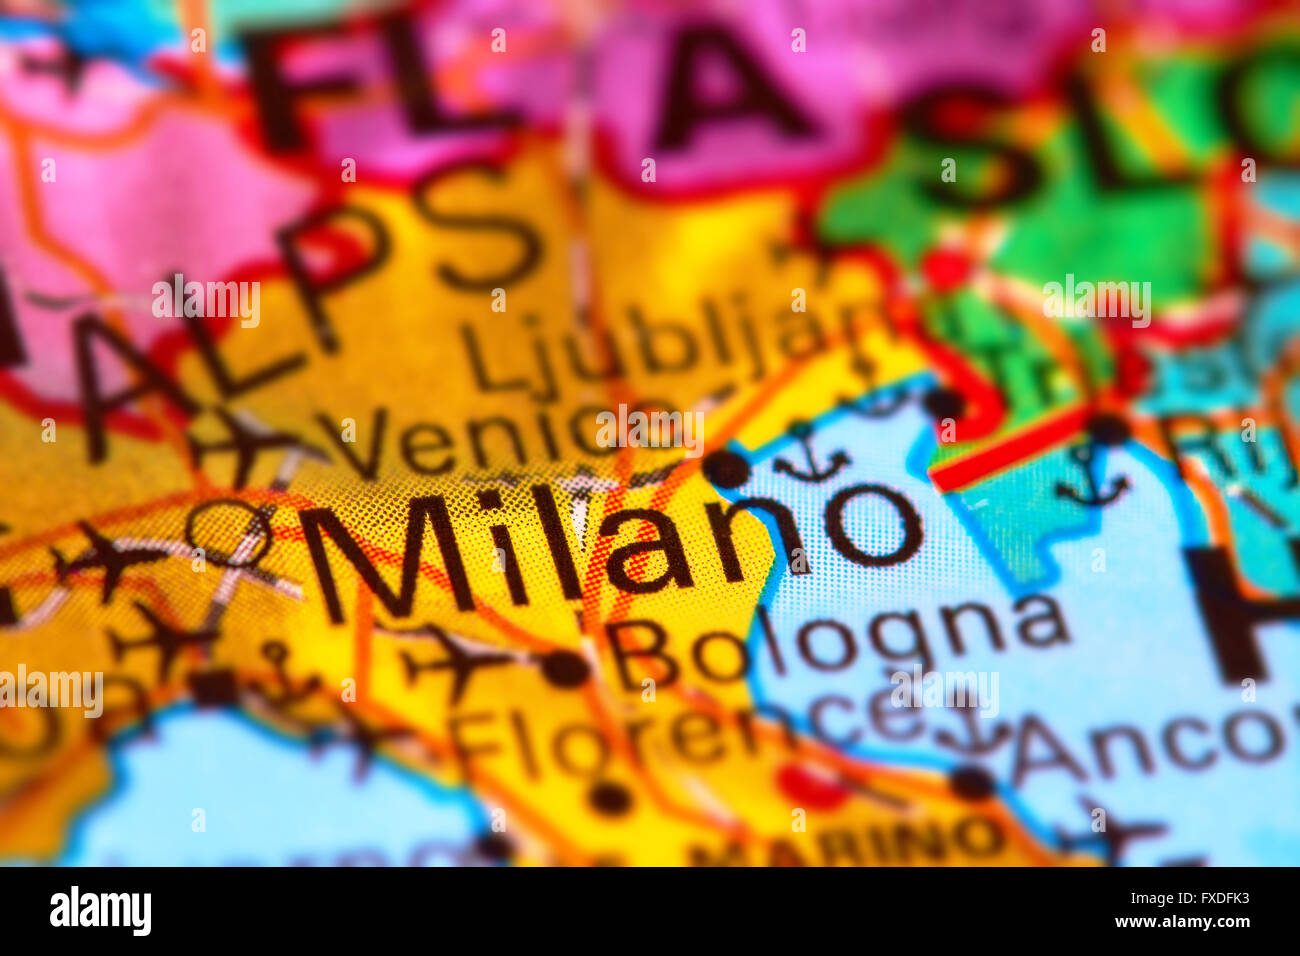 Milano city in italy on the world map stock photo 102330567 alamy milano city in italy on the world map gumiabroncs Choice Image